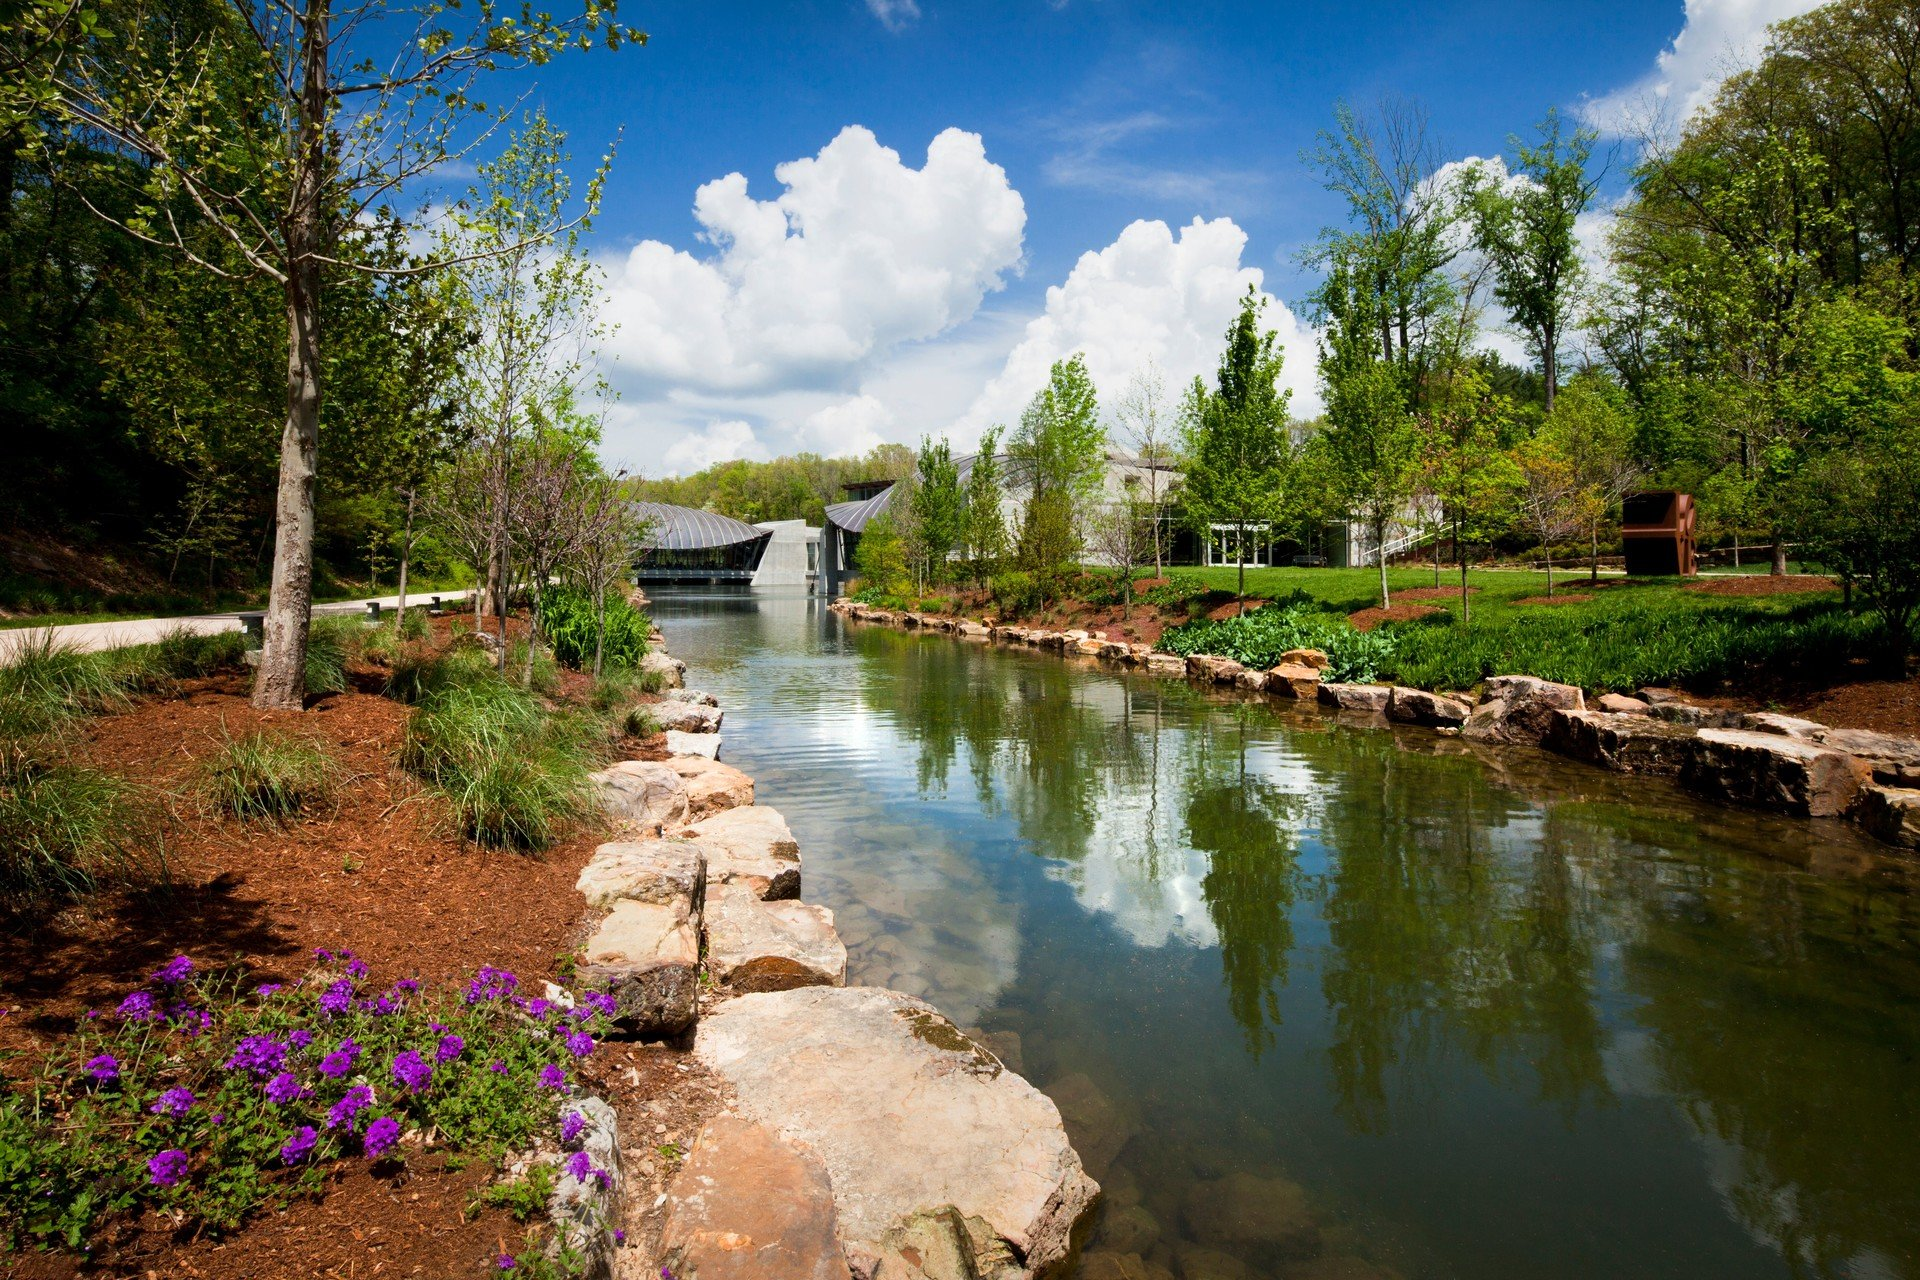 Trip Ideas tree outdoor water sky grass Nature River landform body of water geographical feature reflection house stream waterway Lake flower pond landscape rural area autumn Canal surrounded Garden valley reservoir park bushes stone